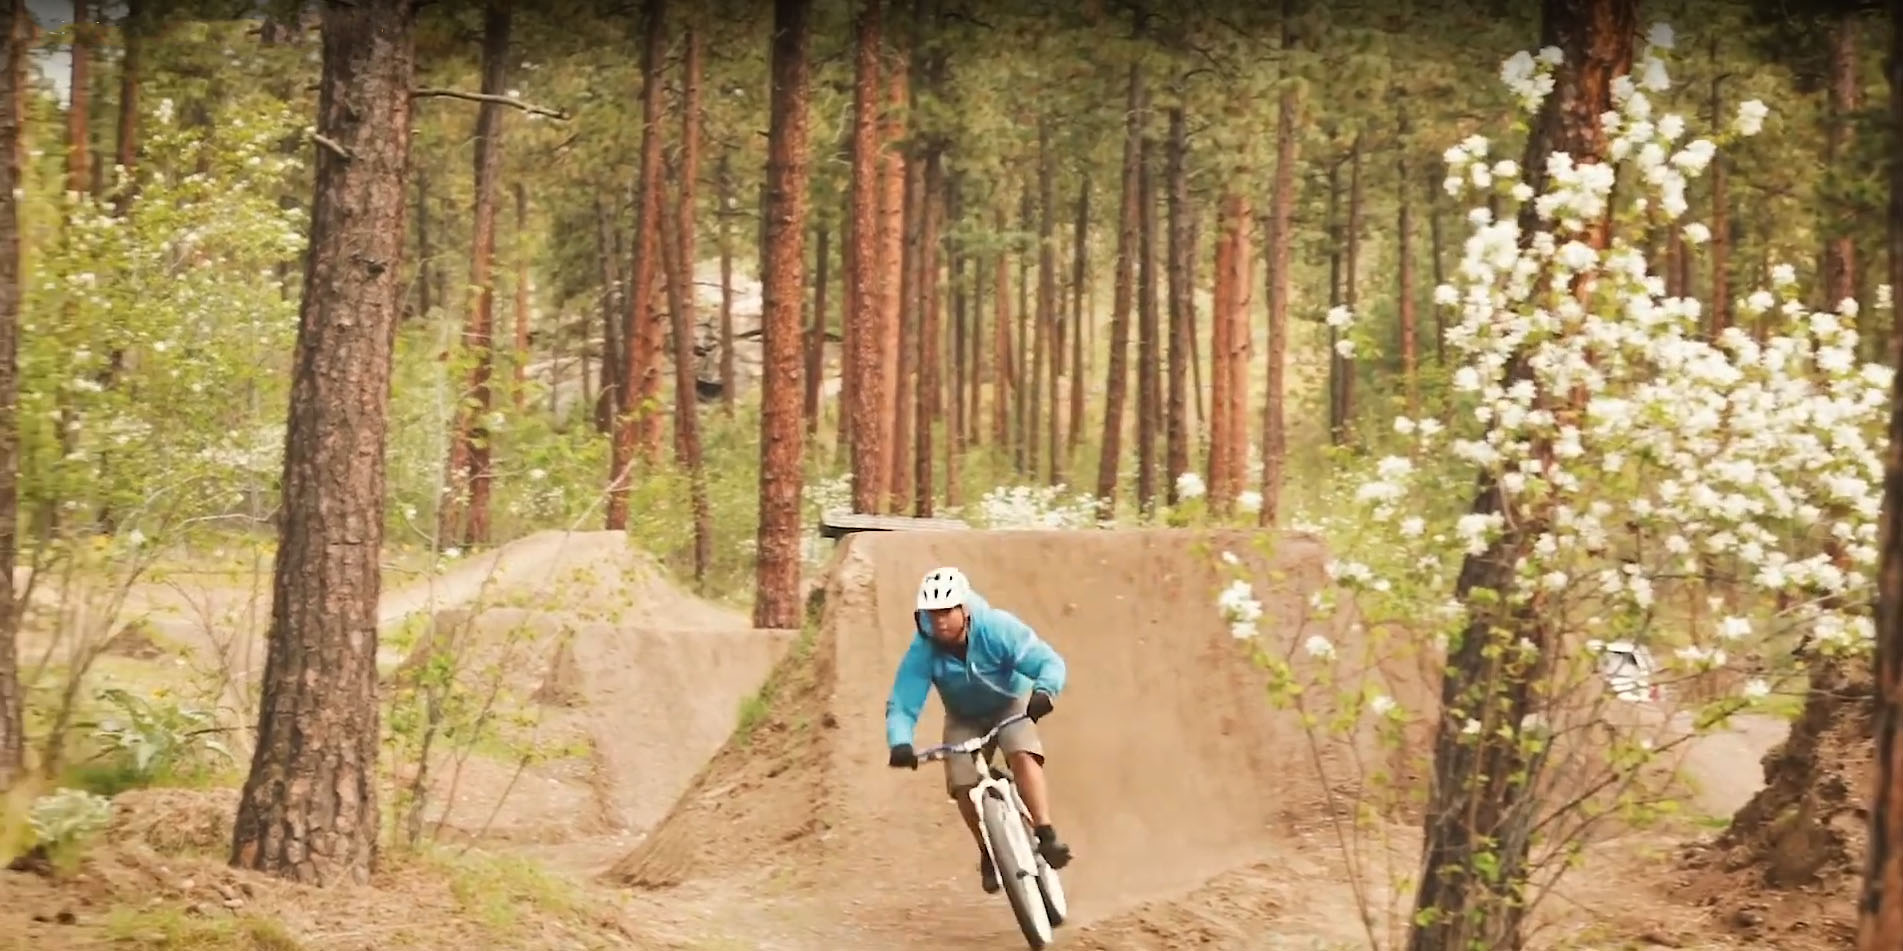 Man biking outside on a dirt track with jumps